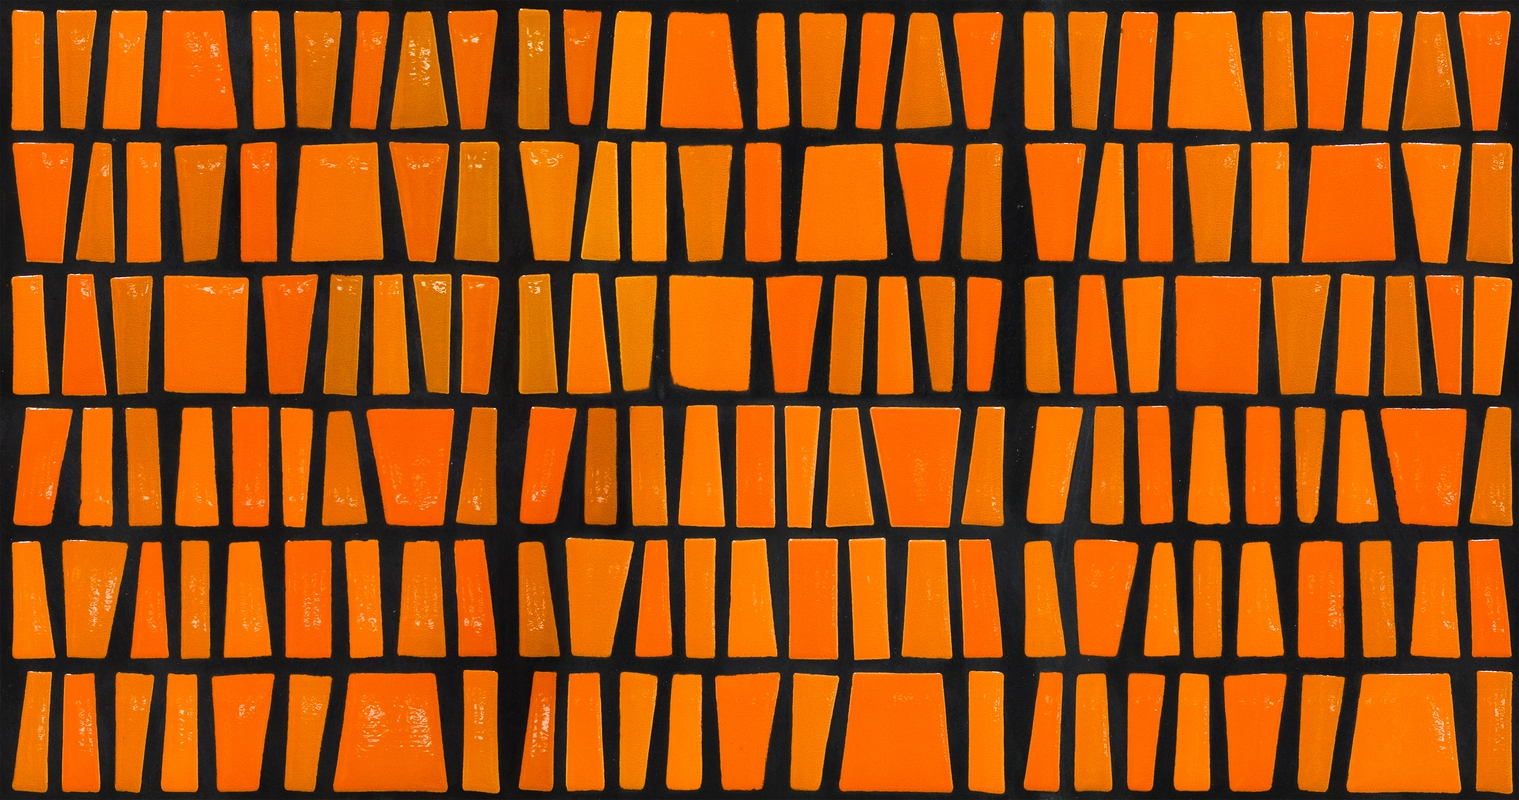 wildtextures-african-inspired-orange-glossy-tiles-seamless-pattern